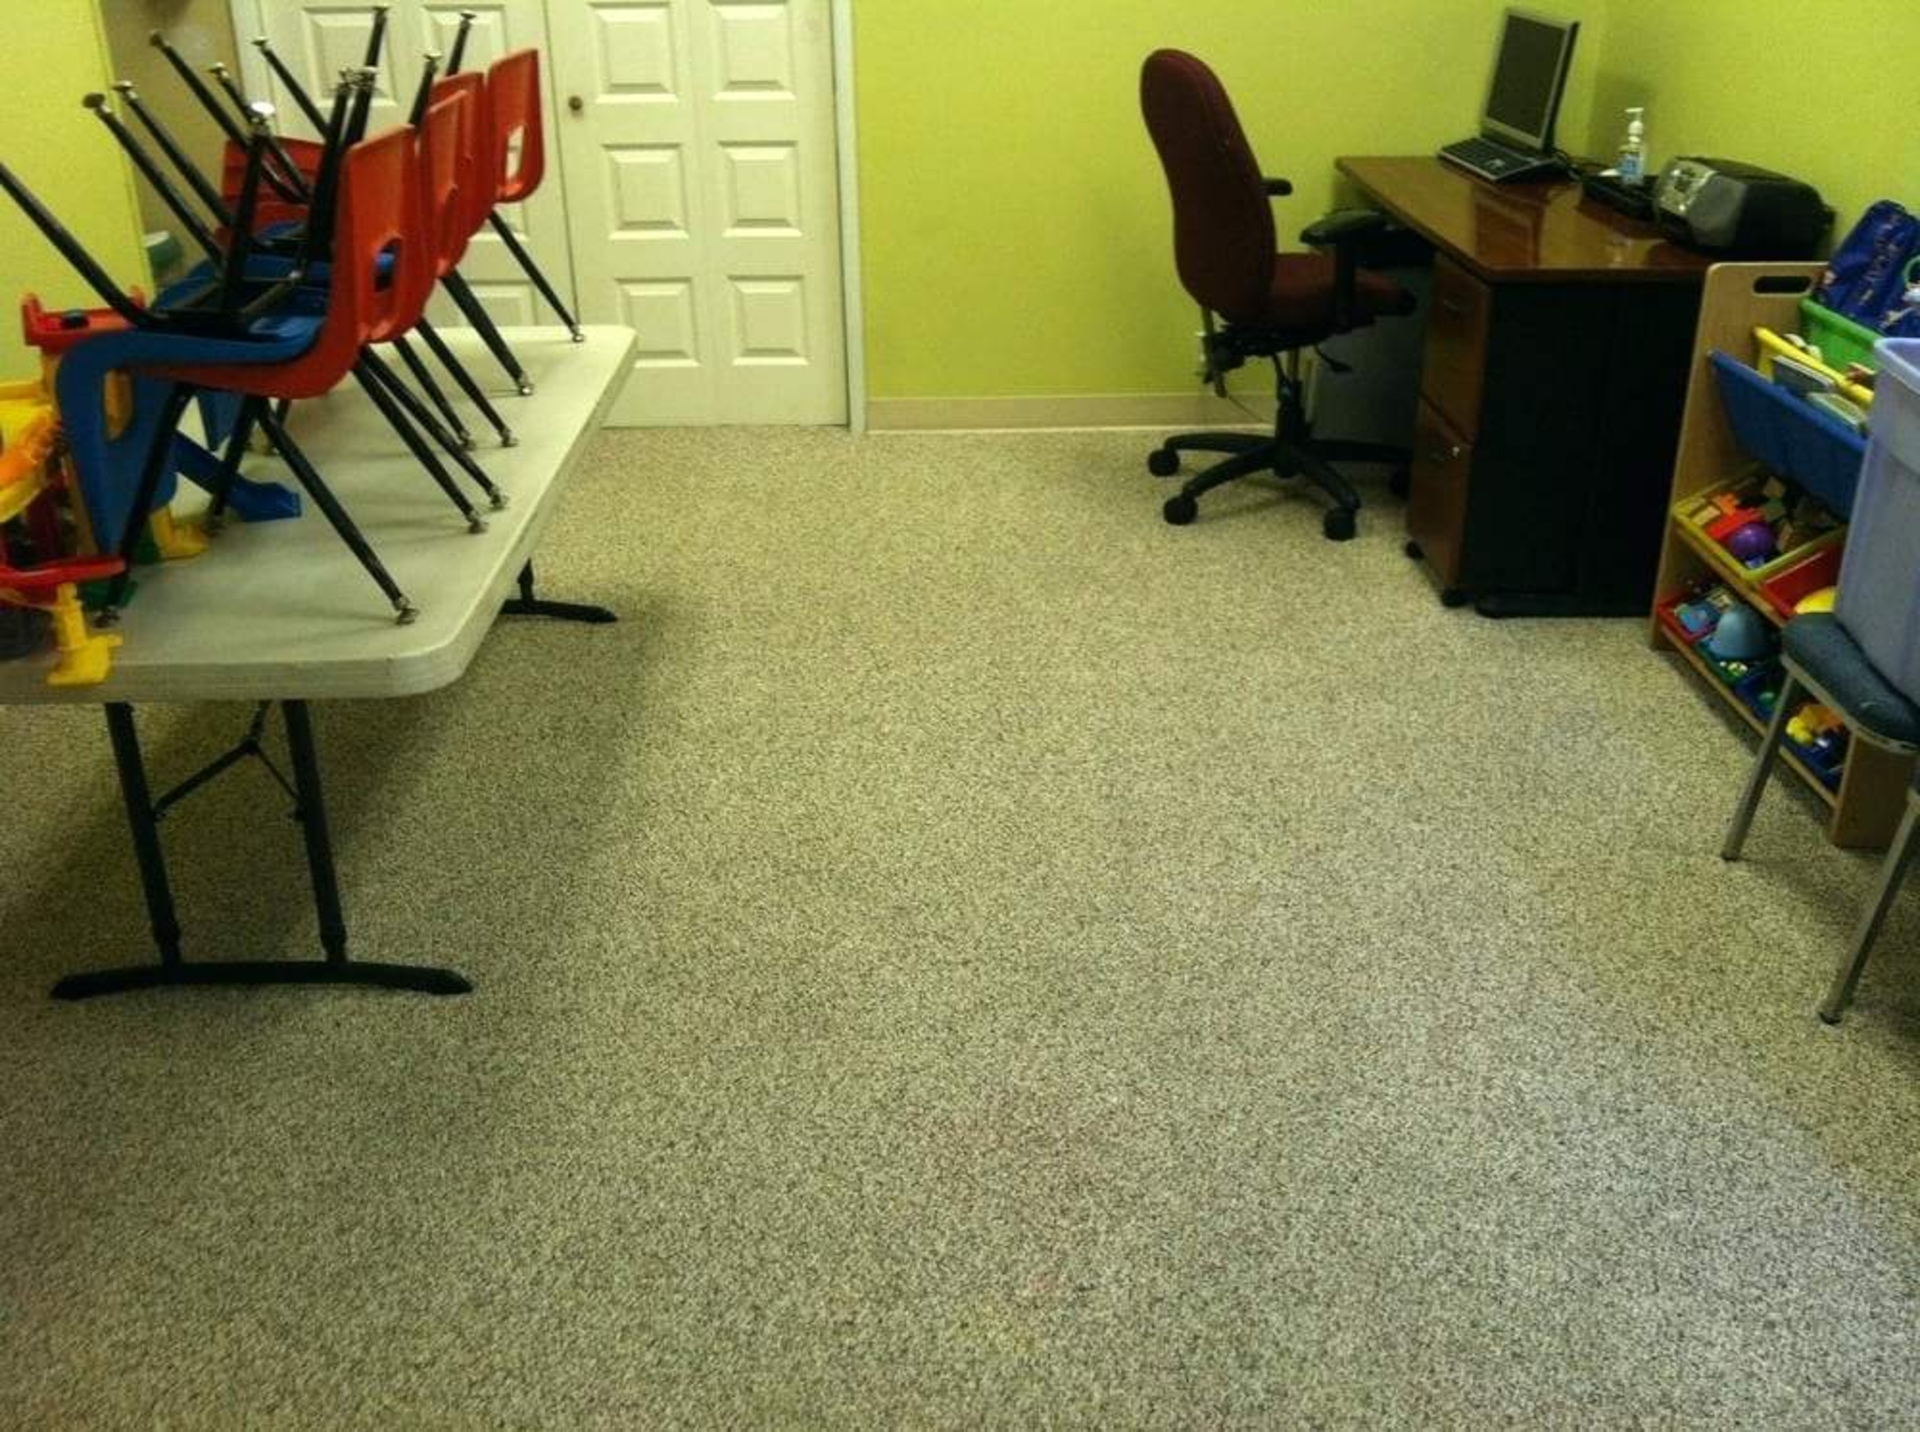 Other Methods Orange County Carpet Cleaning Wants To Share image